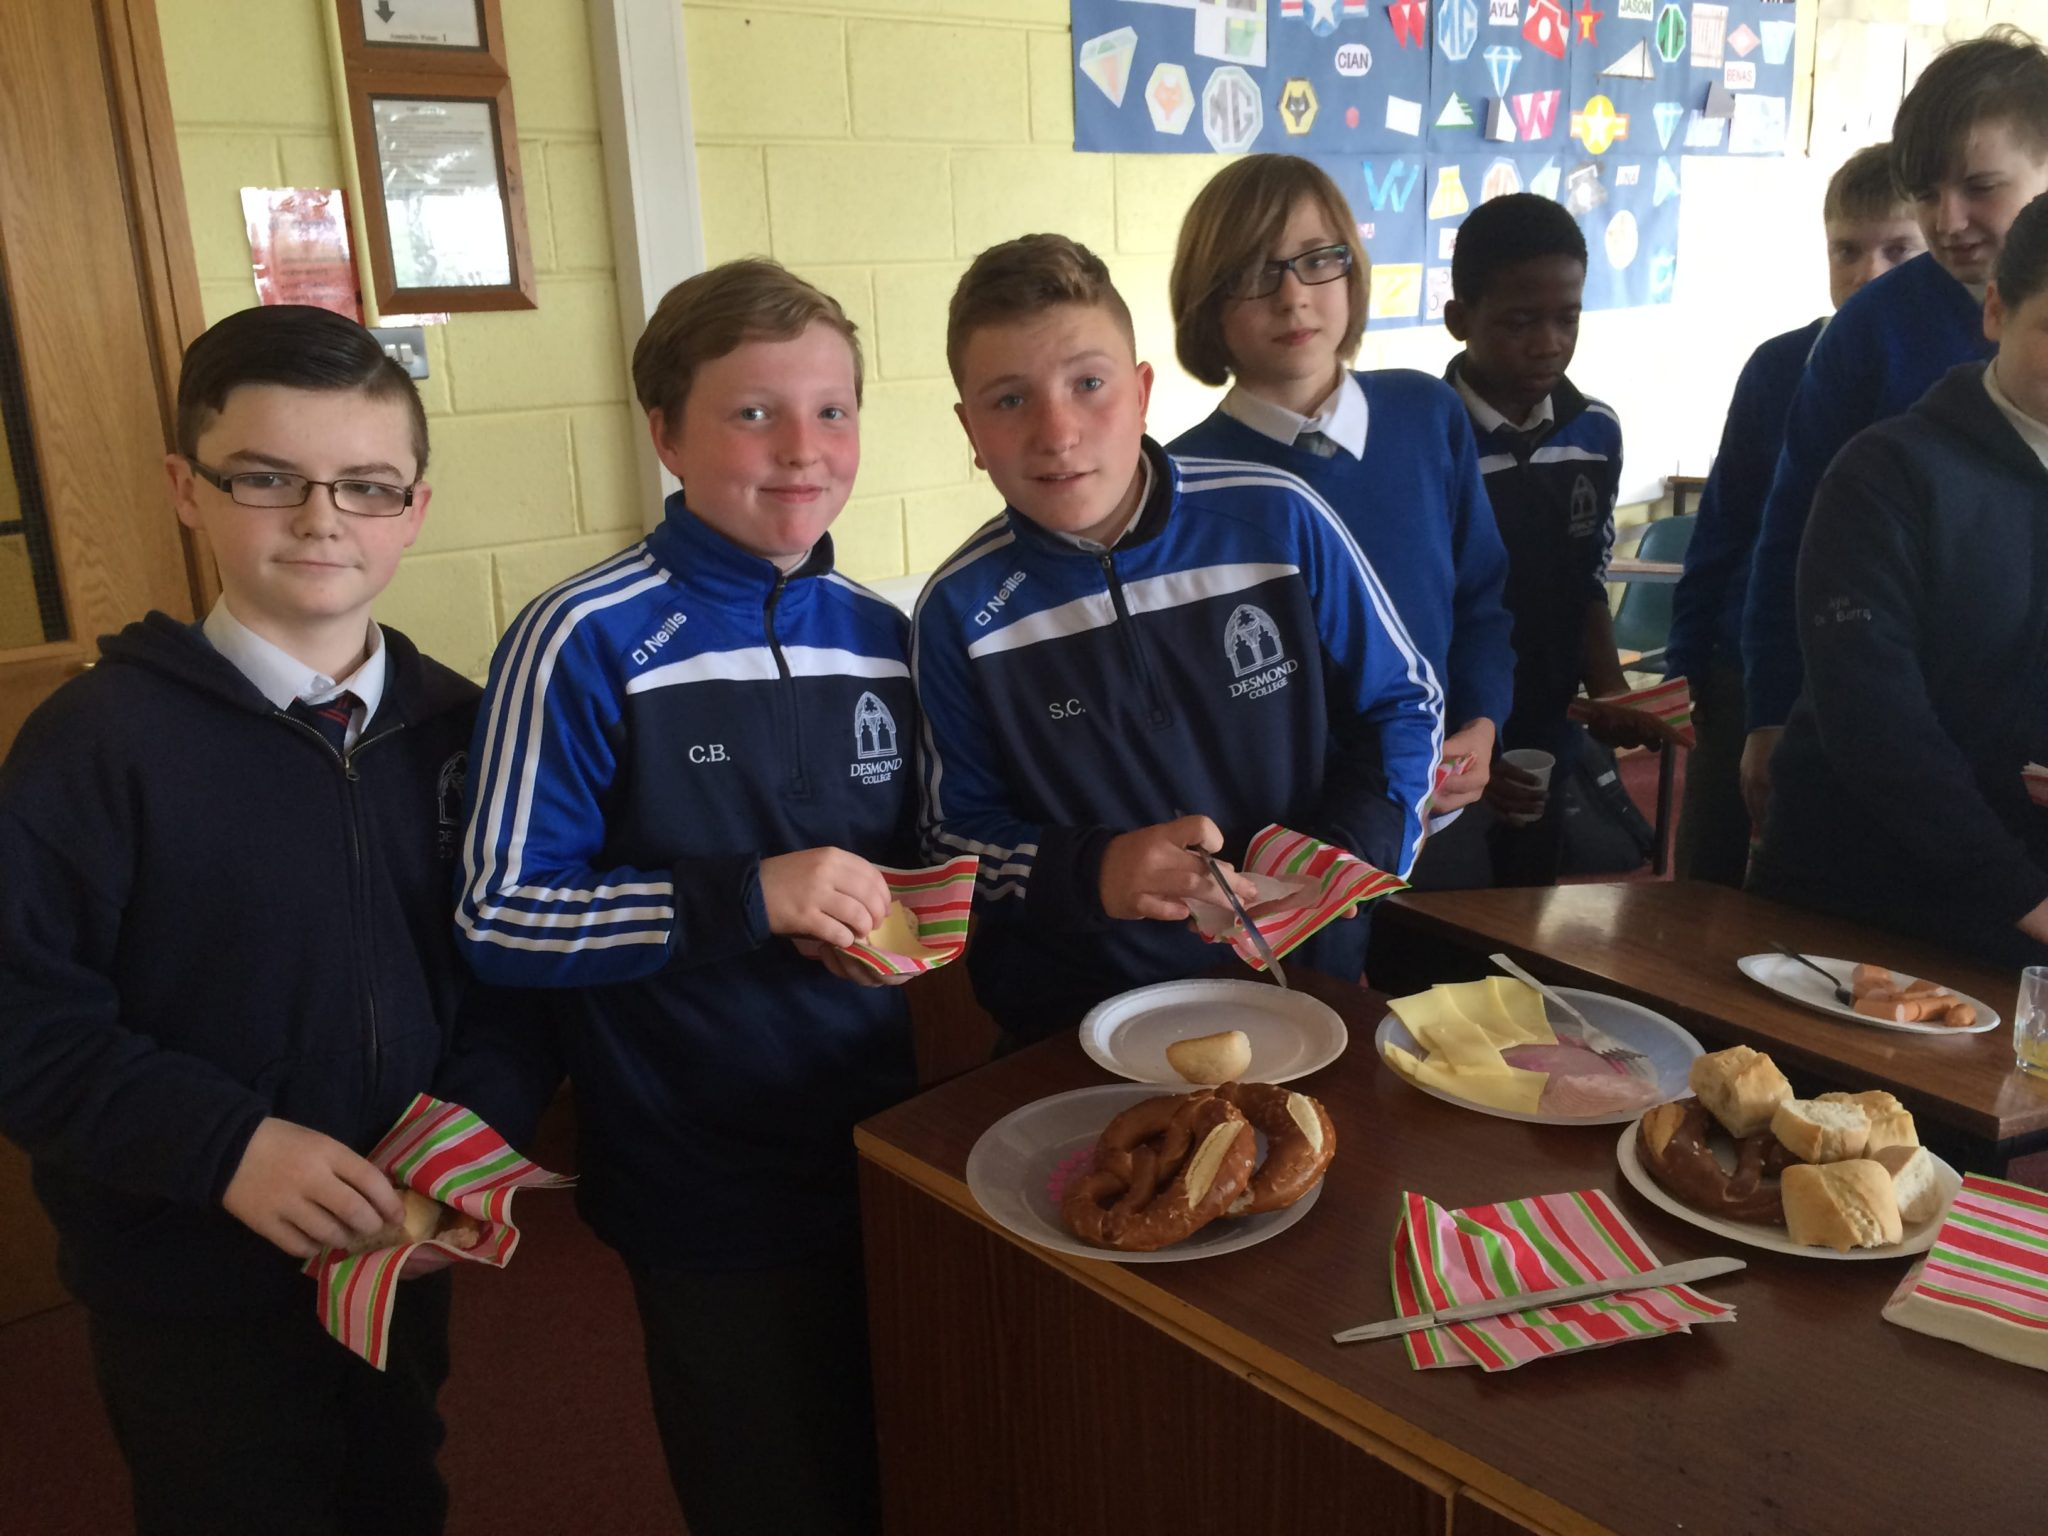 May 2016: Desmond College First year students enjoying a German breakfast as part of their German studies in Desmond College